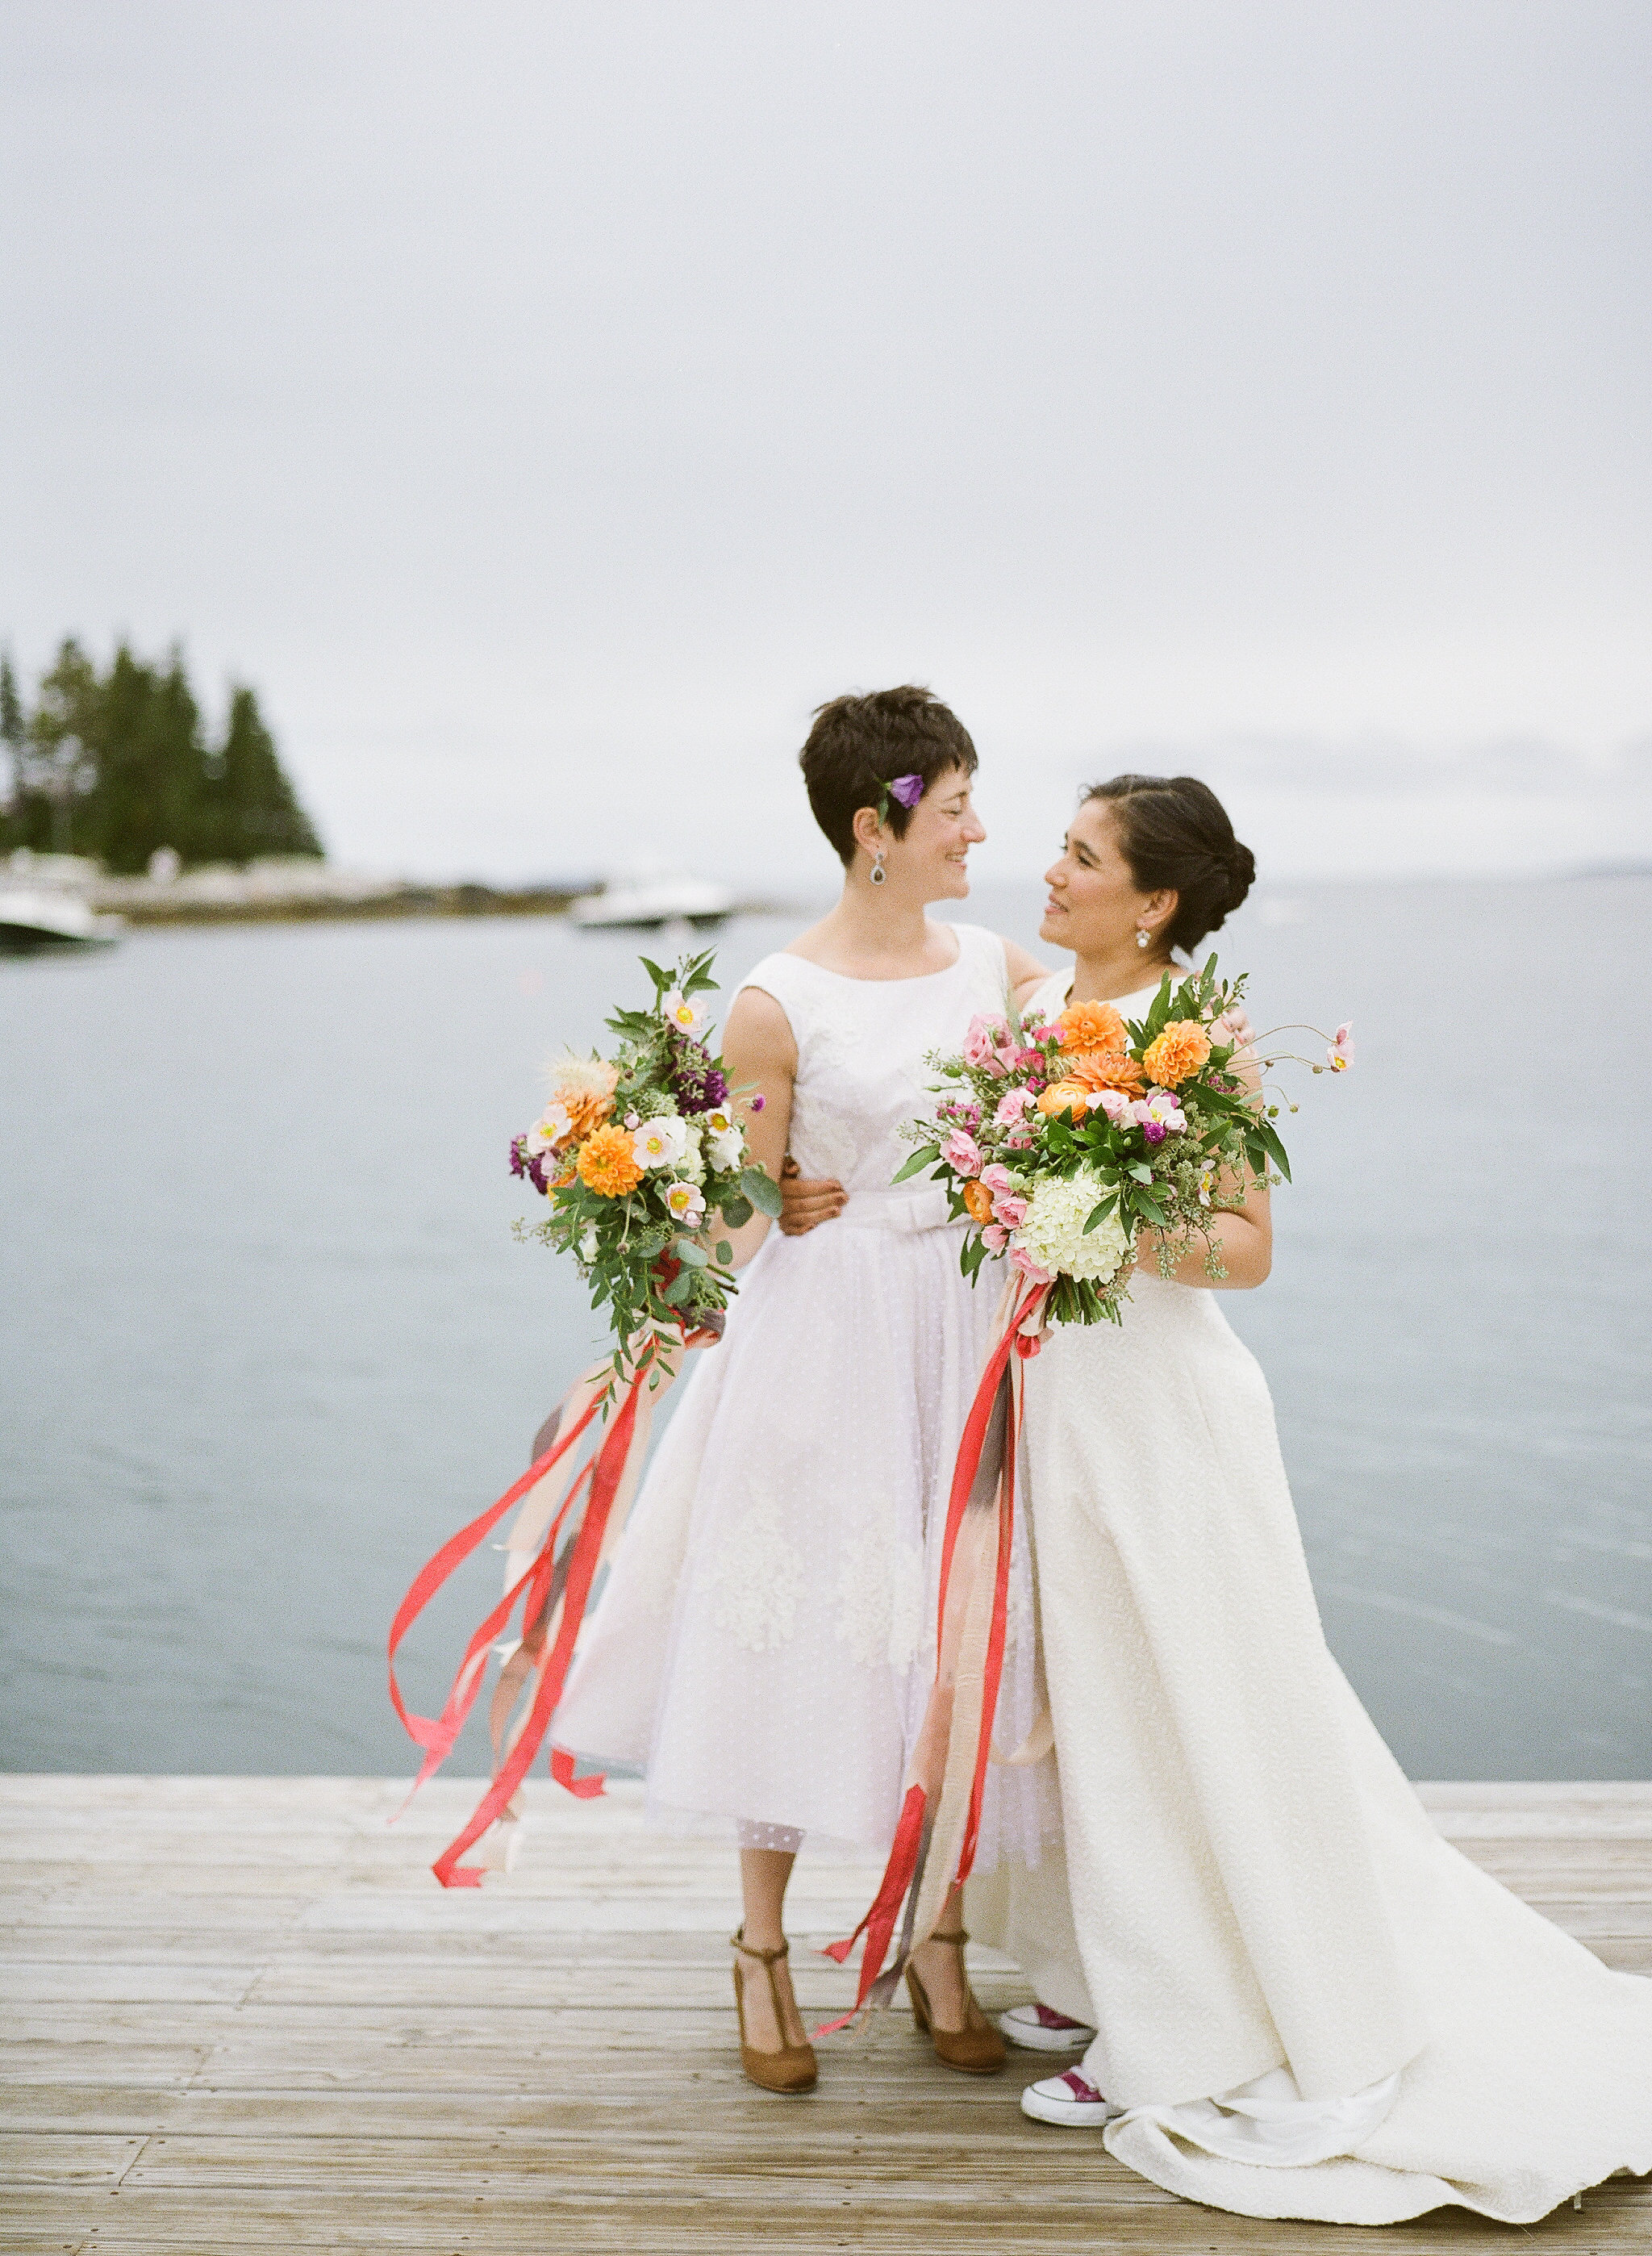 Watershed_Floral_Newagen_Southport_Maine_Coastal_Wedding_178.jpg